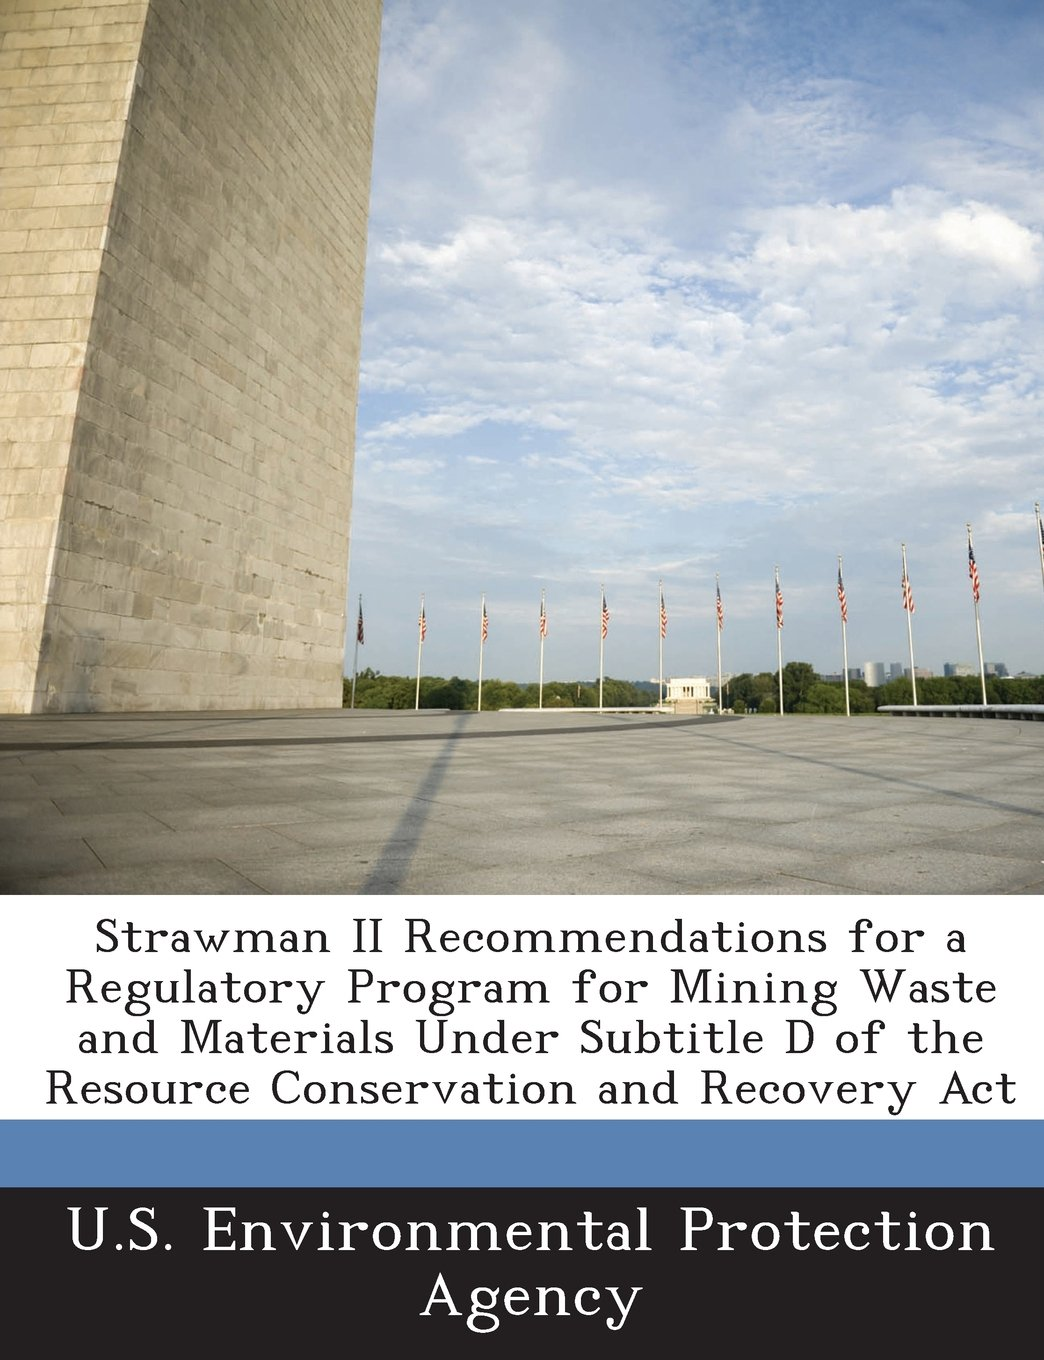 Download Strawman II Recommendations for a Regulatory Program for Mining Waste and Materials Under Subtitle D of the Resource Conservation and Recovery ACT ebook